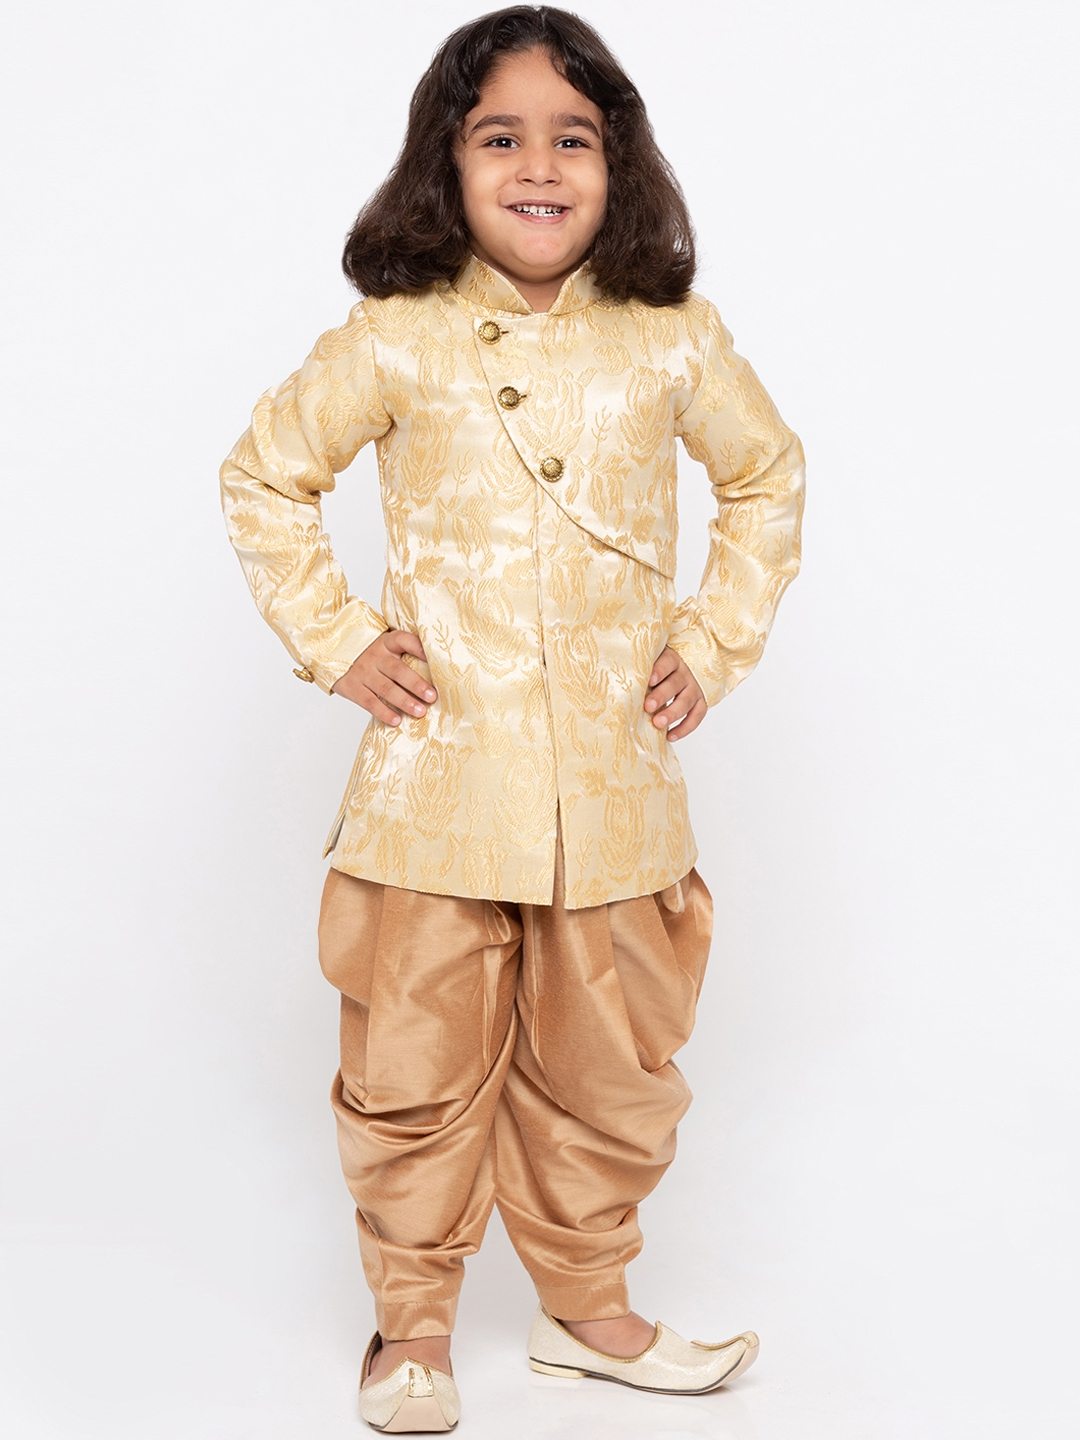 d65698660 Buy JBN Creation Boys Beige & Gold Toned Self Design Sherwani ...